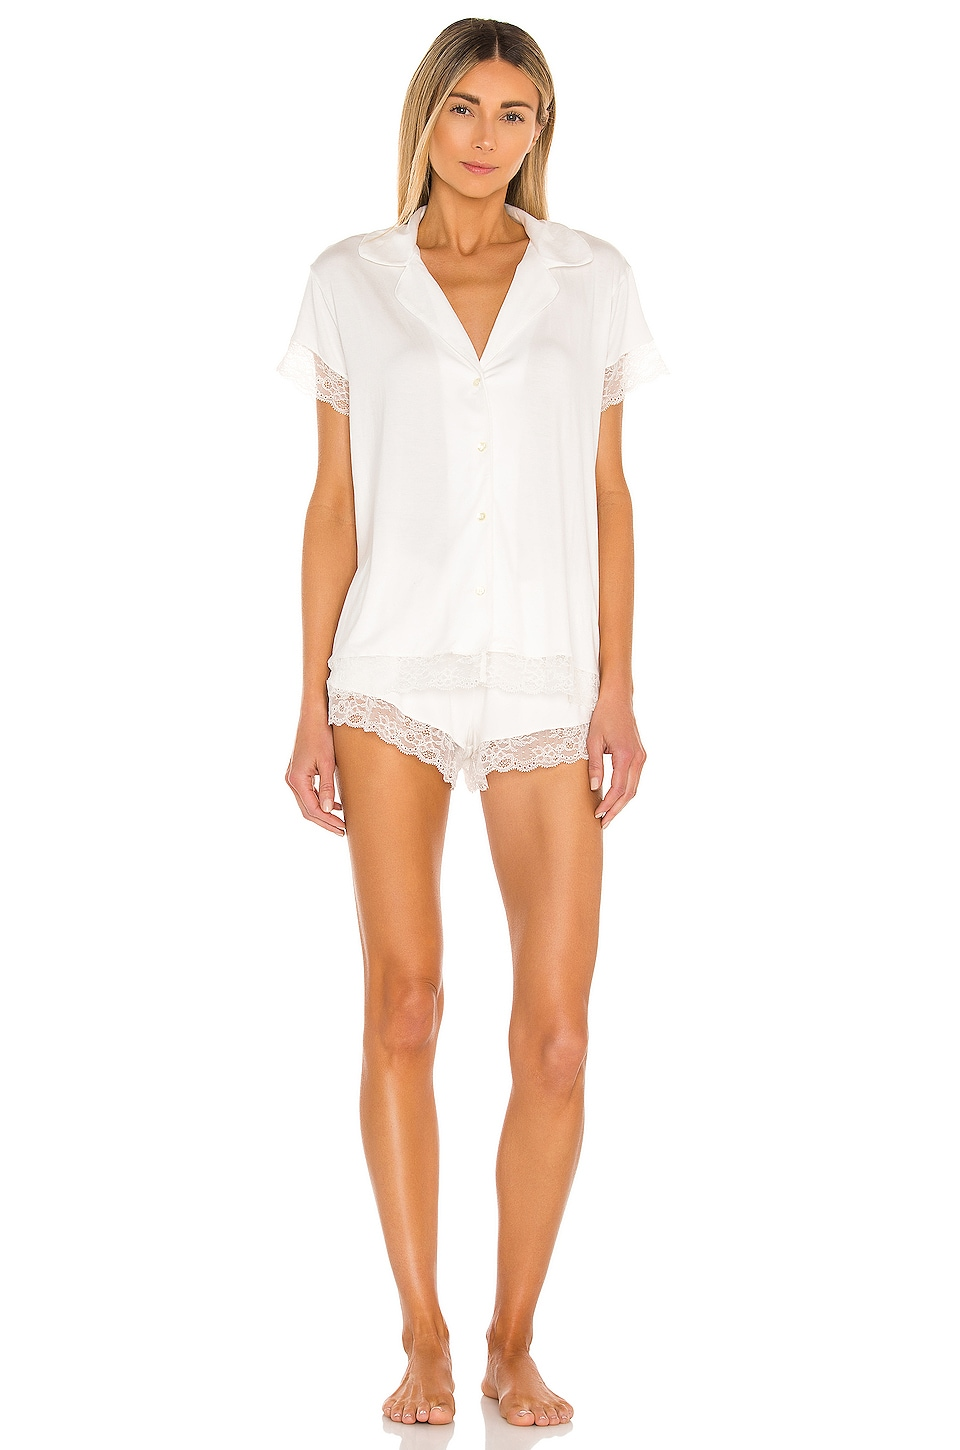 eberjey Malou Lace PJ Set in Ivory